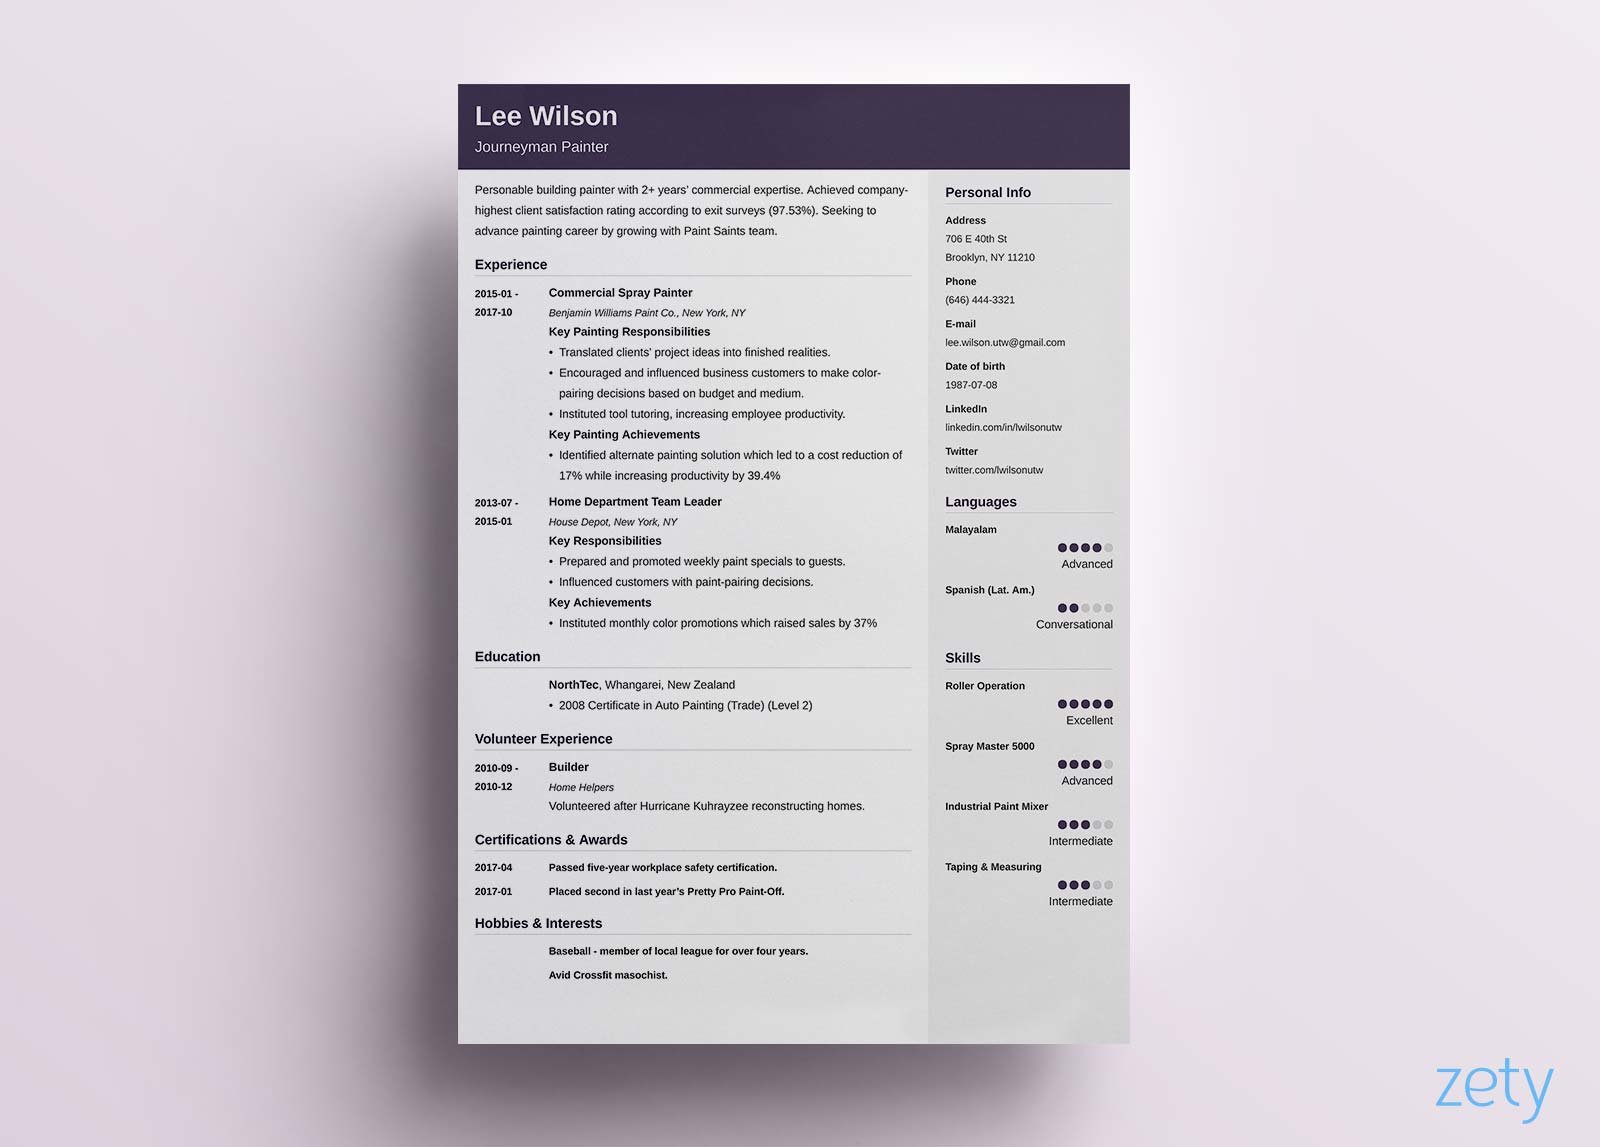 Modern resume templates 18 examples a complete guide example of modern resume design thecheapjerseys Image collections